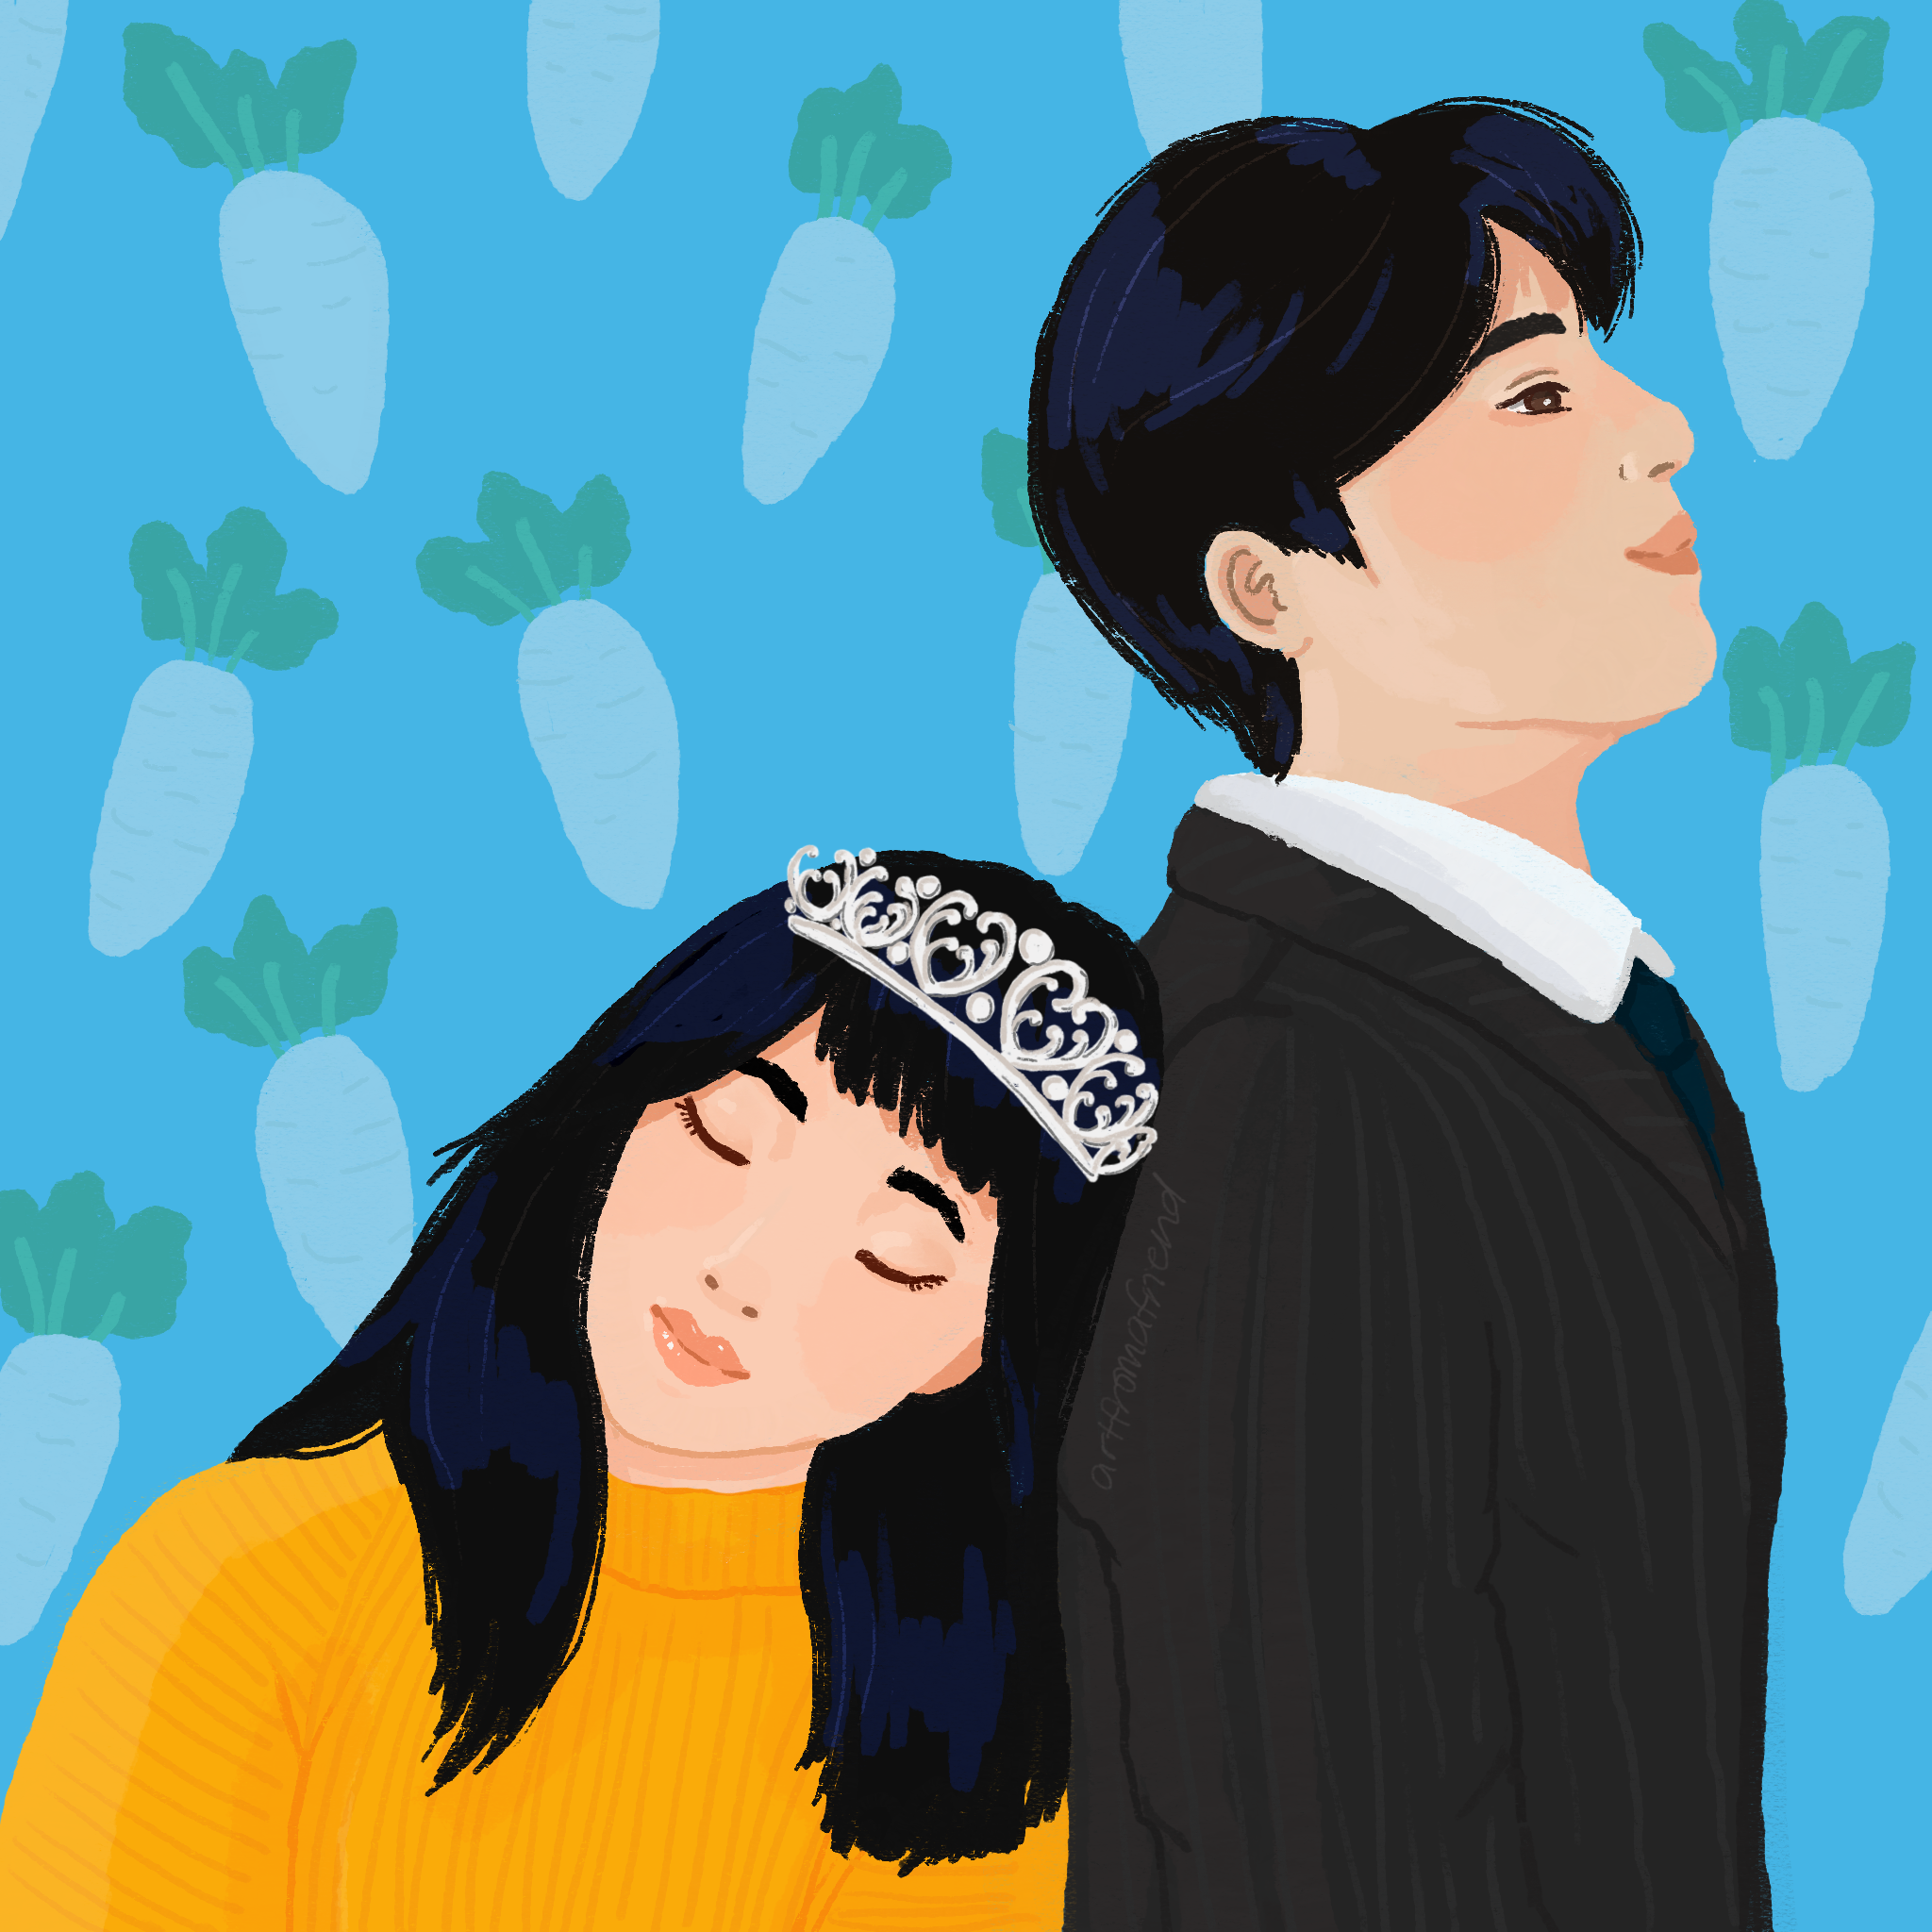 An illustration of a tall Asian man on the right, facing the right and looking up and smiling, with a shorter Asian girl wearing a yellow turtle neck and tiara, closing her eyes and leaning against his back.